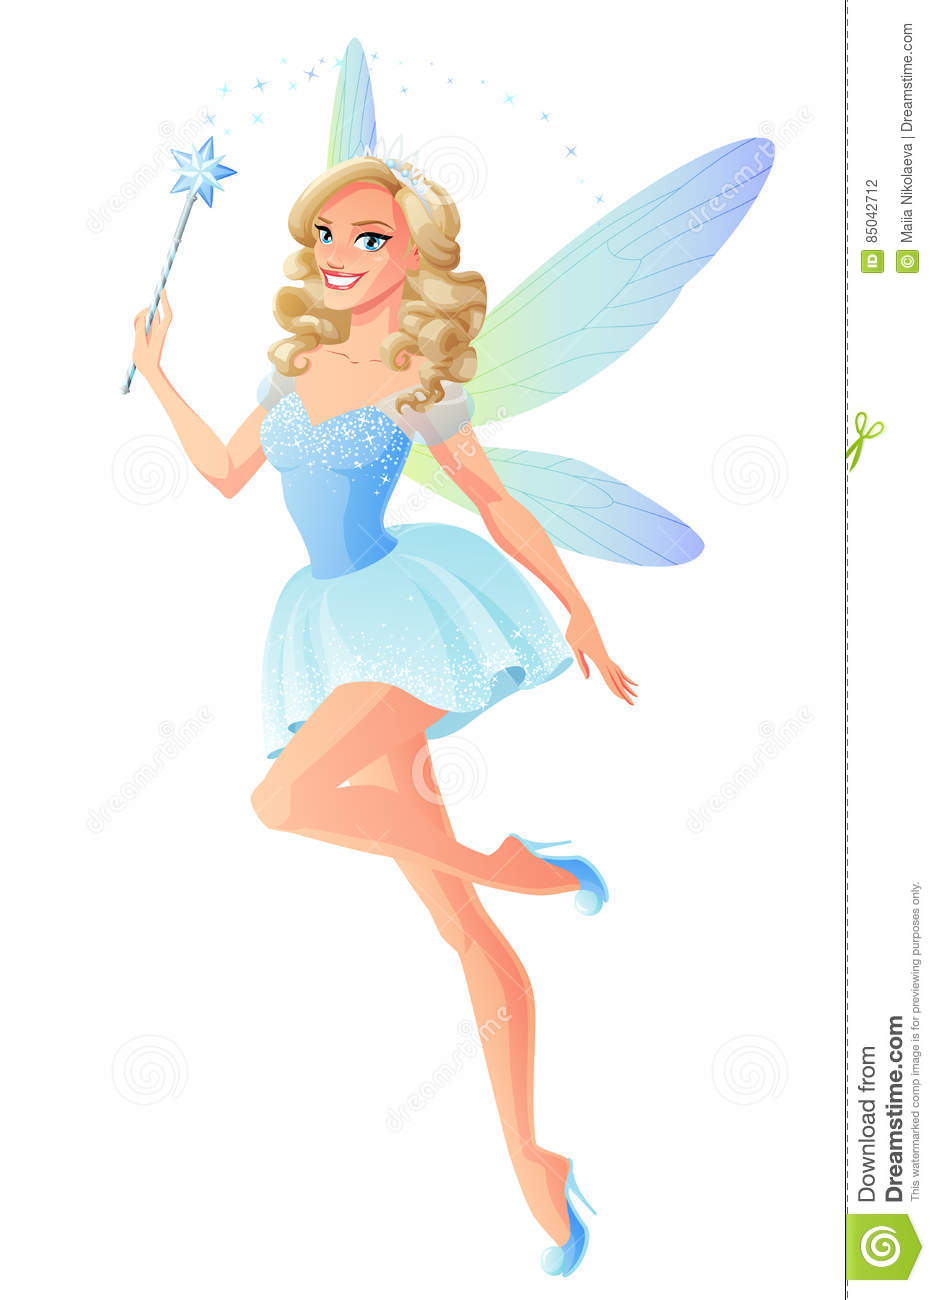 Download Vector Beautiful Blue Fairy With Magic Wand And Dragonfly Wings. Stock Vector - Illustration  sc 1 st  Dreamstime.com & Vector Beautiful Blue Fairy With Magic Wand And Dragonfly Wings ...